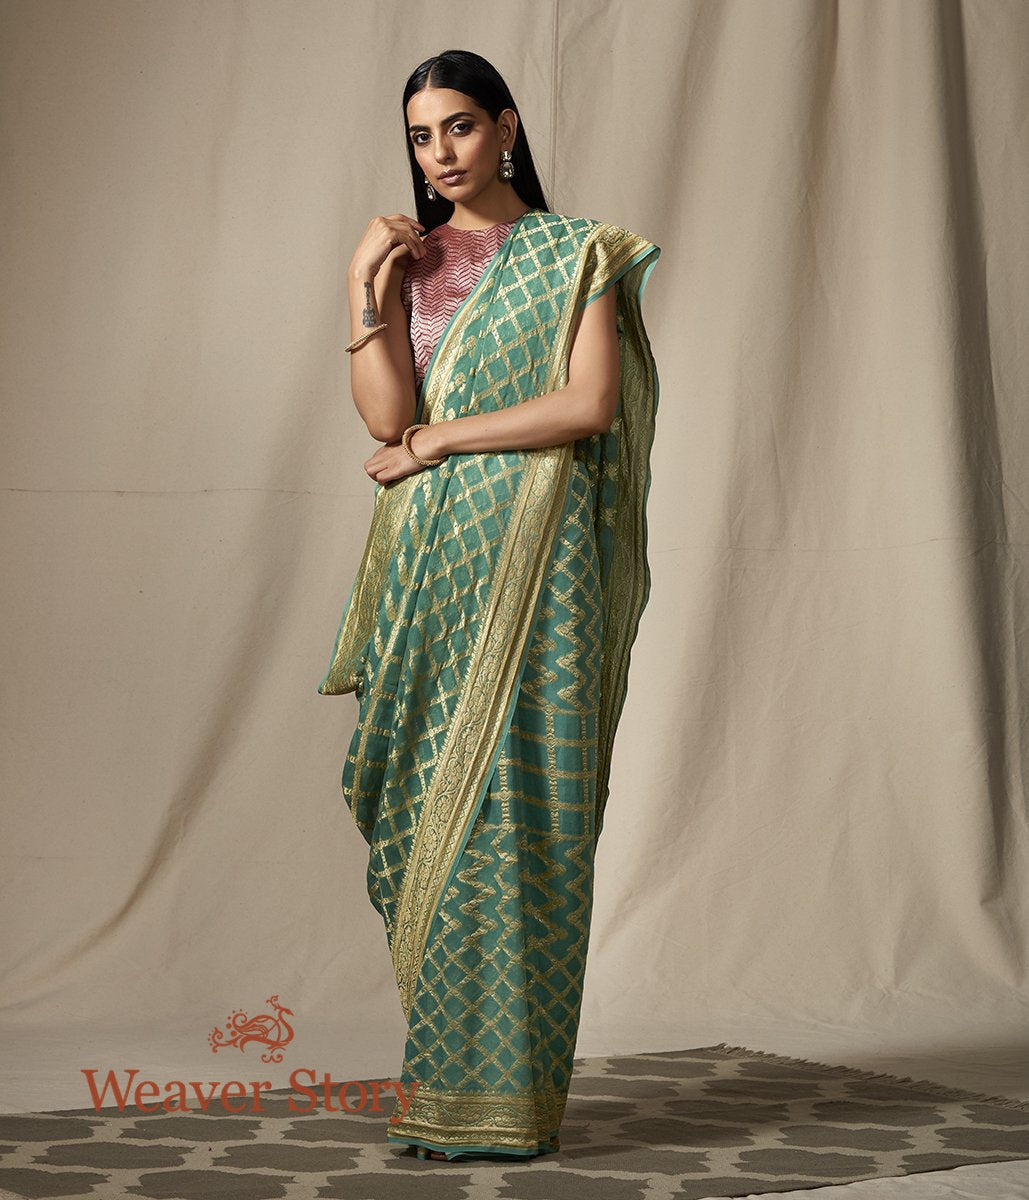 Handwoven Banarasi Georgette Jaal in Green with Gold Zari Jaal